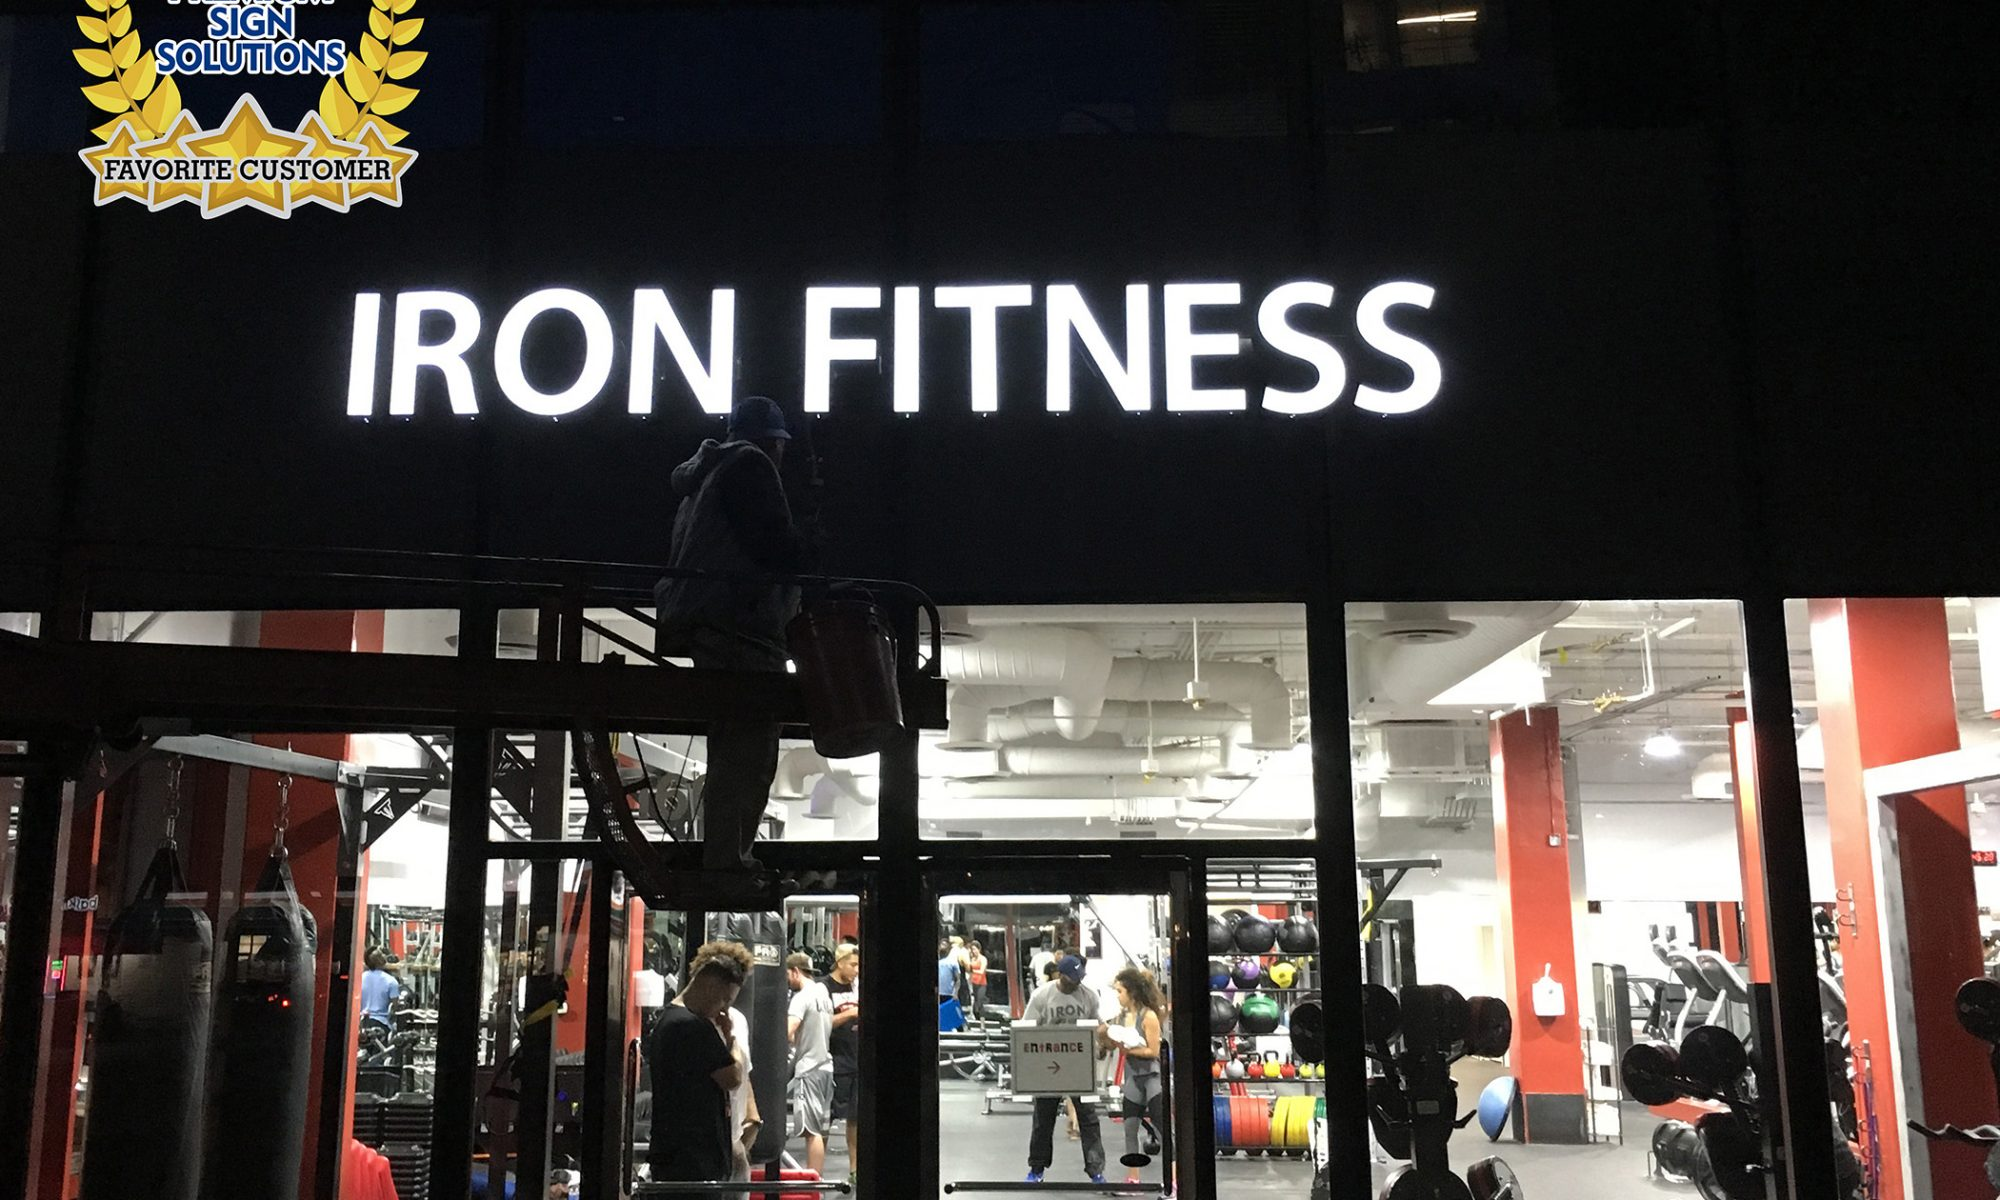 Iron Fitness is among our favorite clients. As their facilities are closed, they are offering their members several fitness options online.